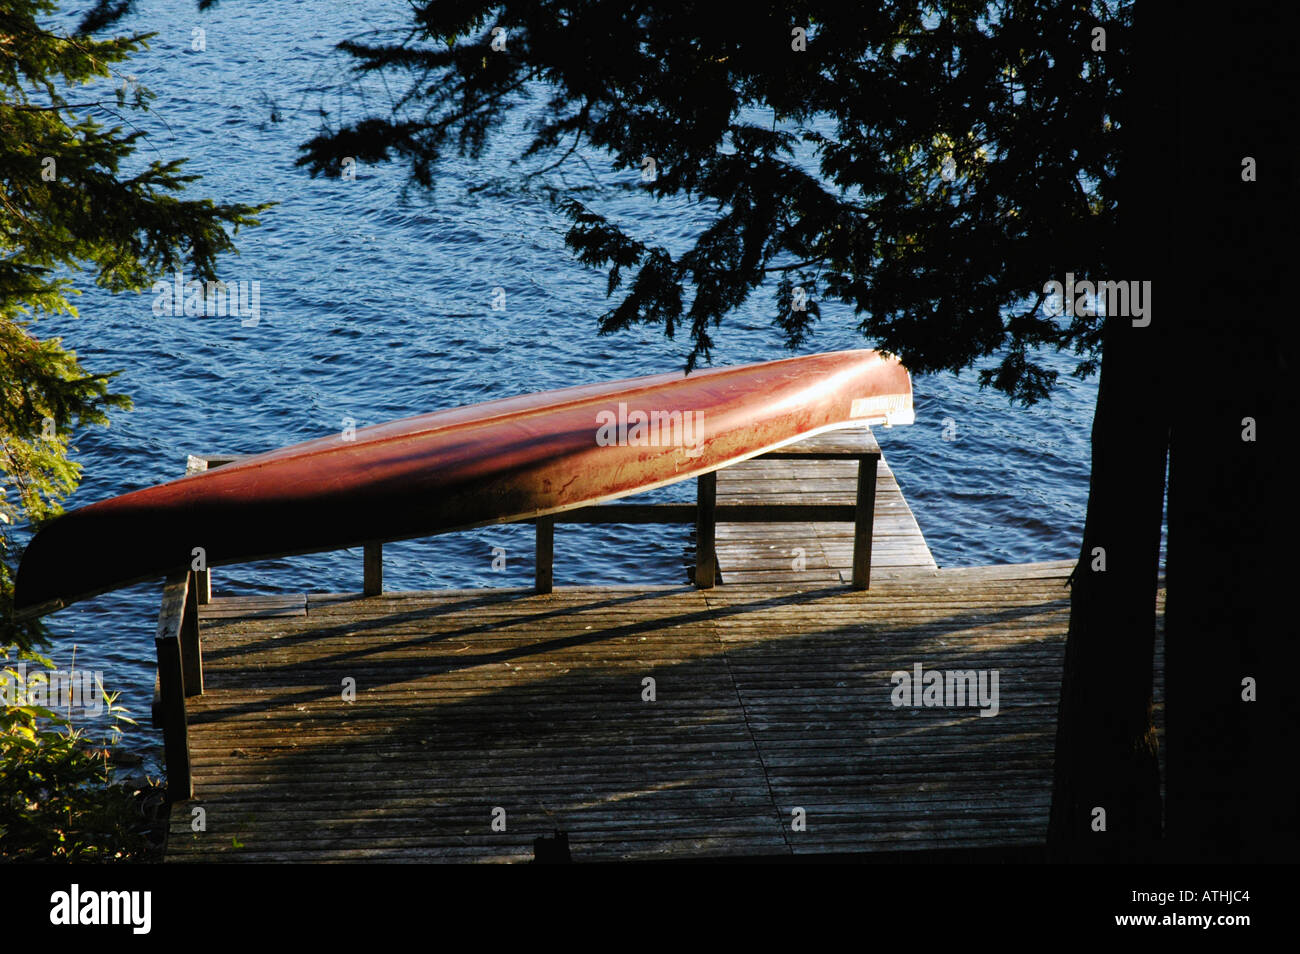 red canoe on dock with slightly windy water and surrounded by forest - Stock Image